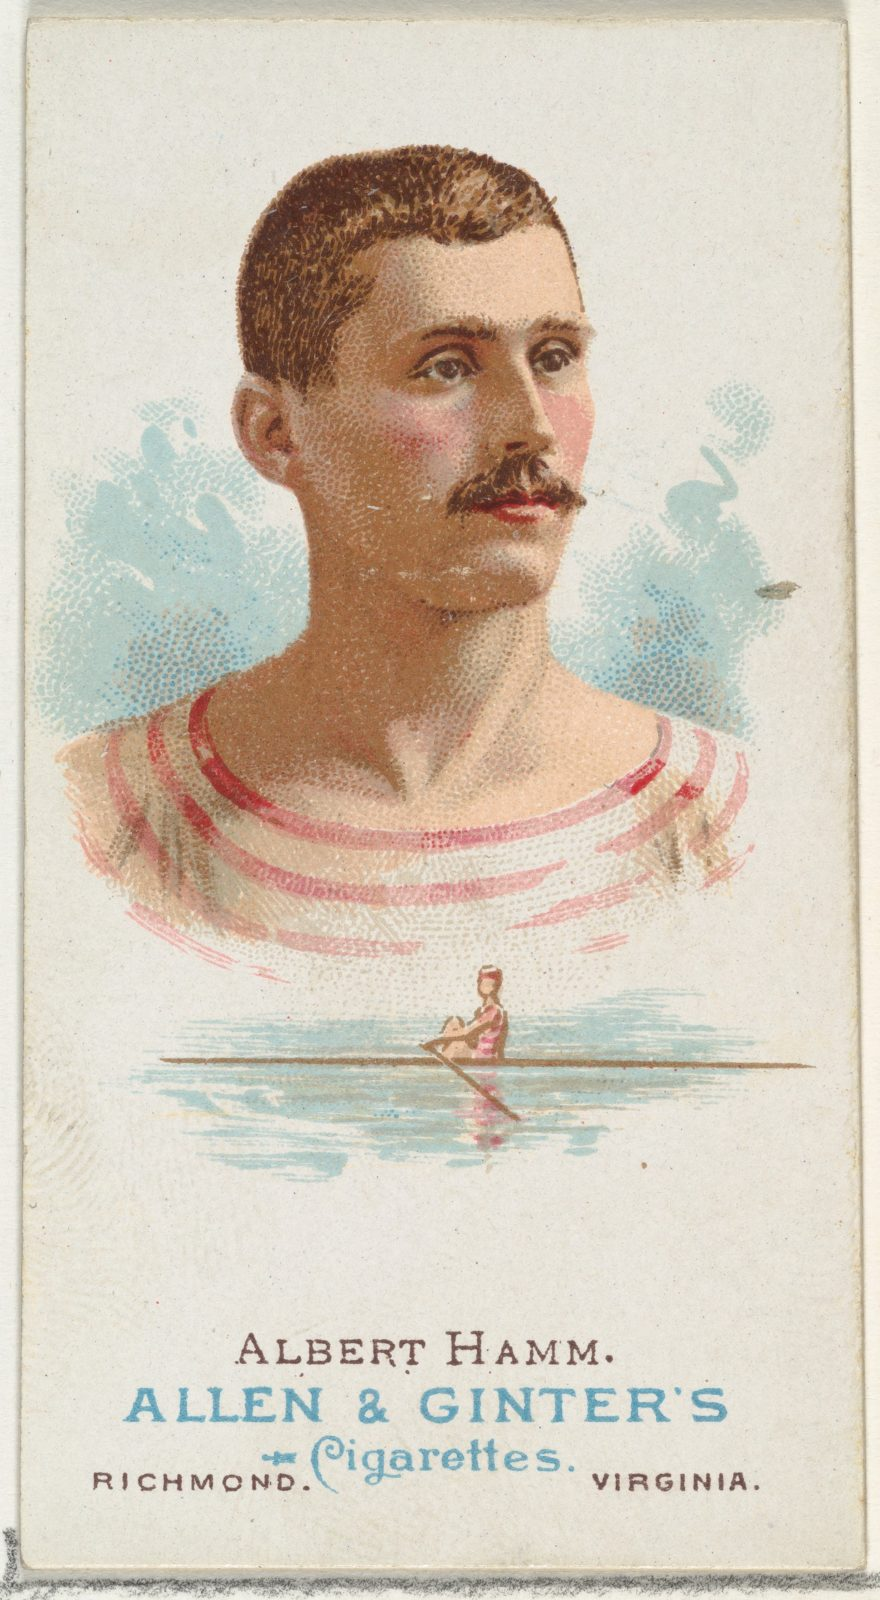 Albert Hamm, Oarsman, from World's Champions, Series 1 (N28) for Allen & Ginter Cigarettes